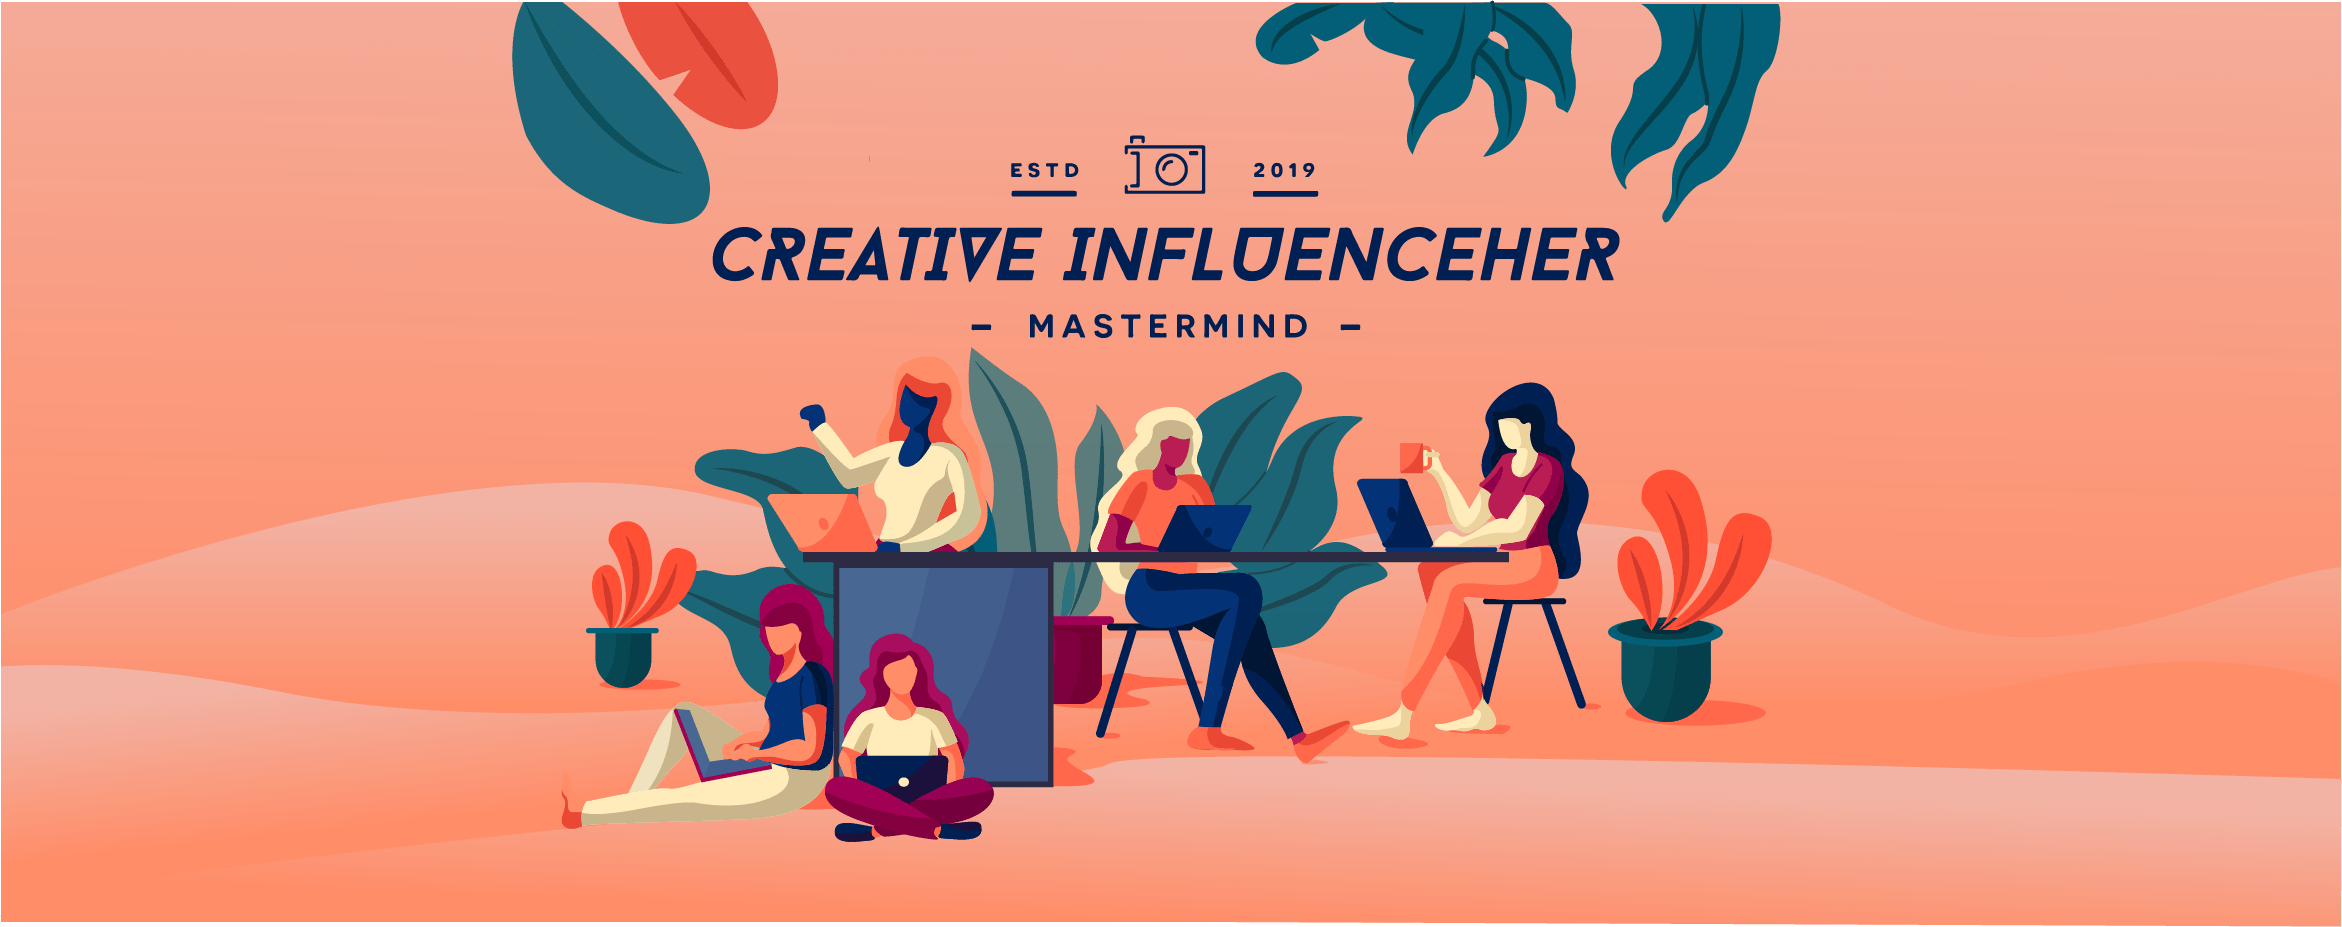 Creative InfluenceHER Banner-min.png